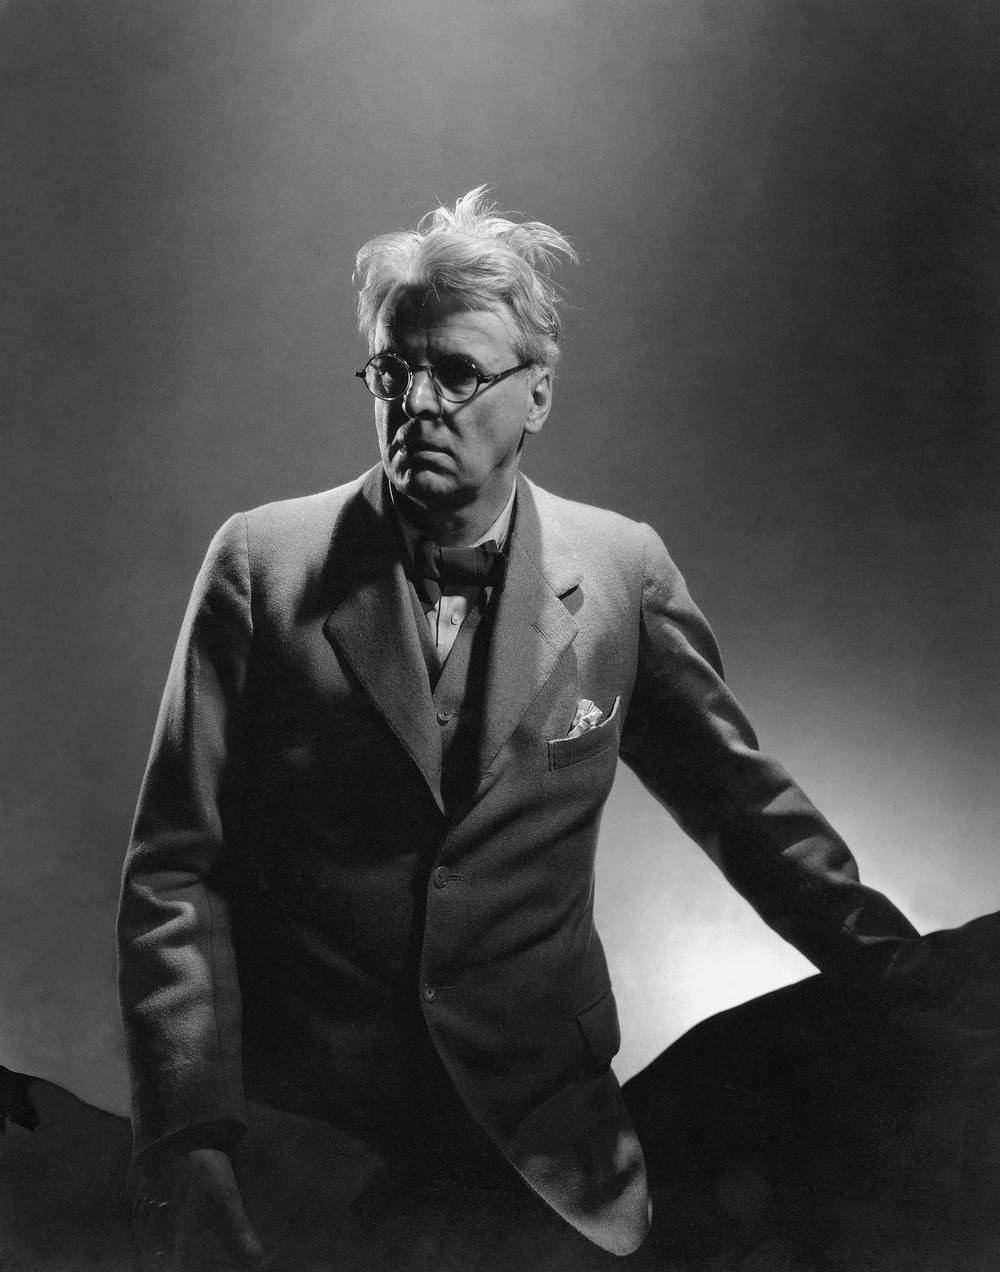 Not Bernie Sanders, but W.B. Yeats